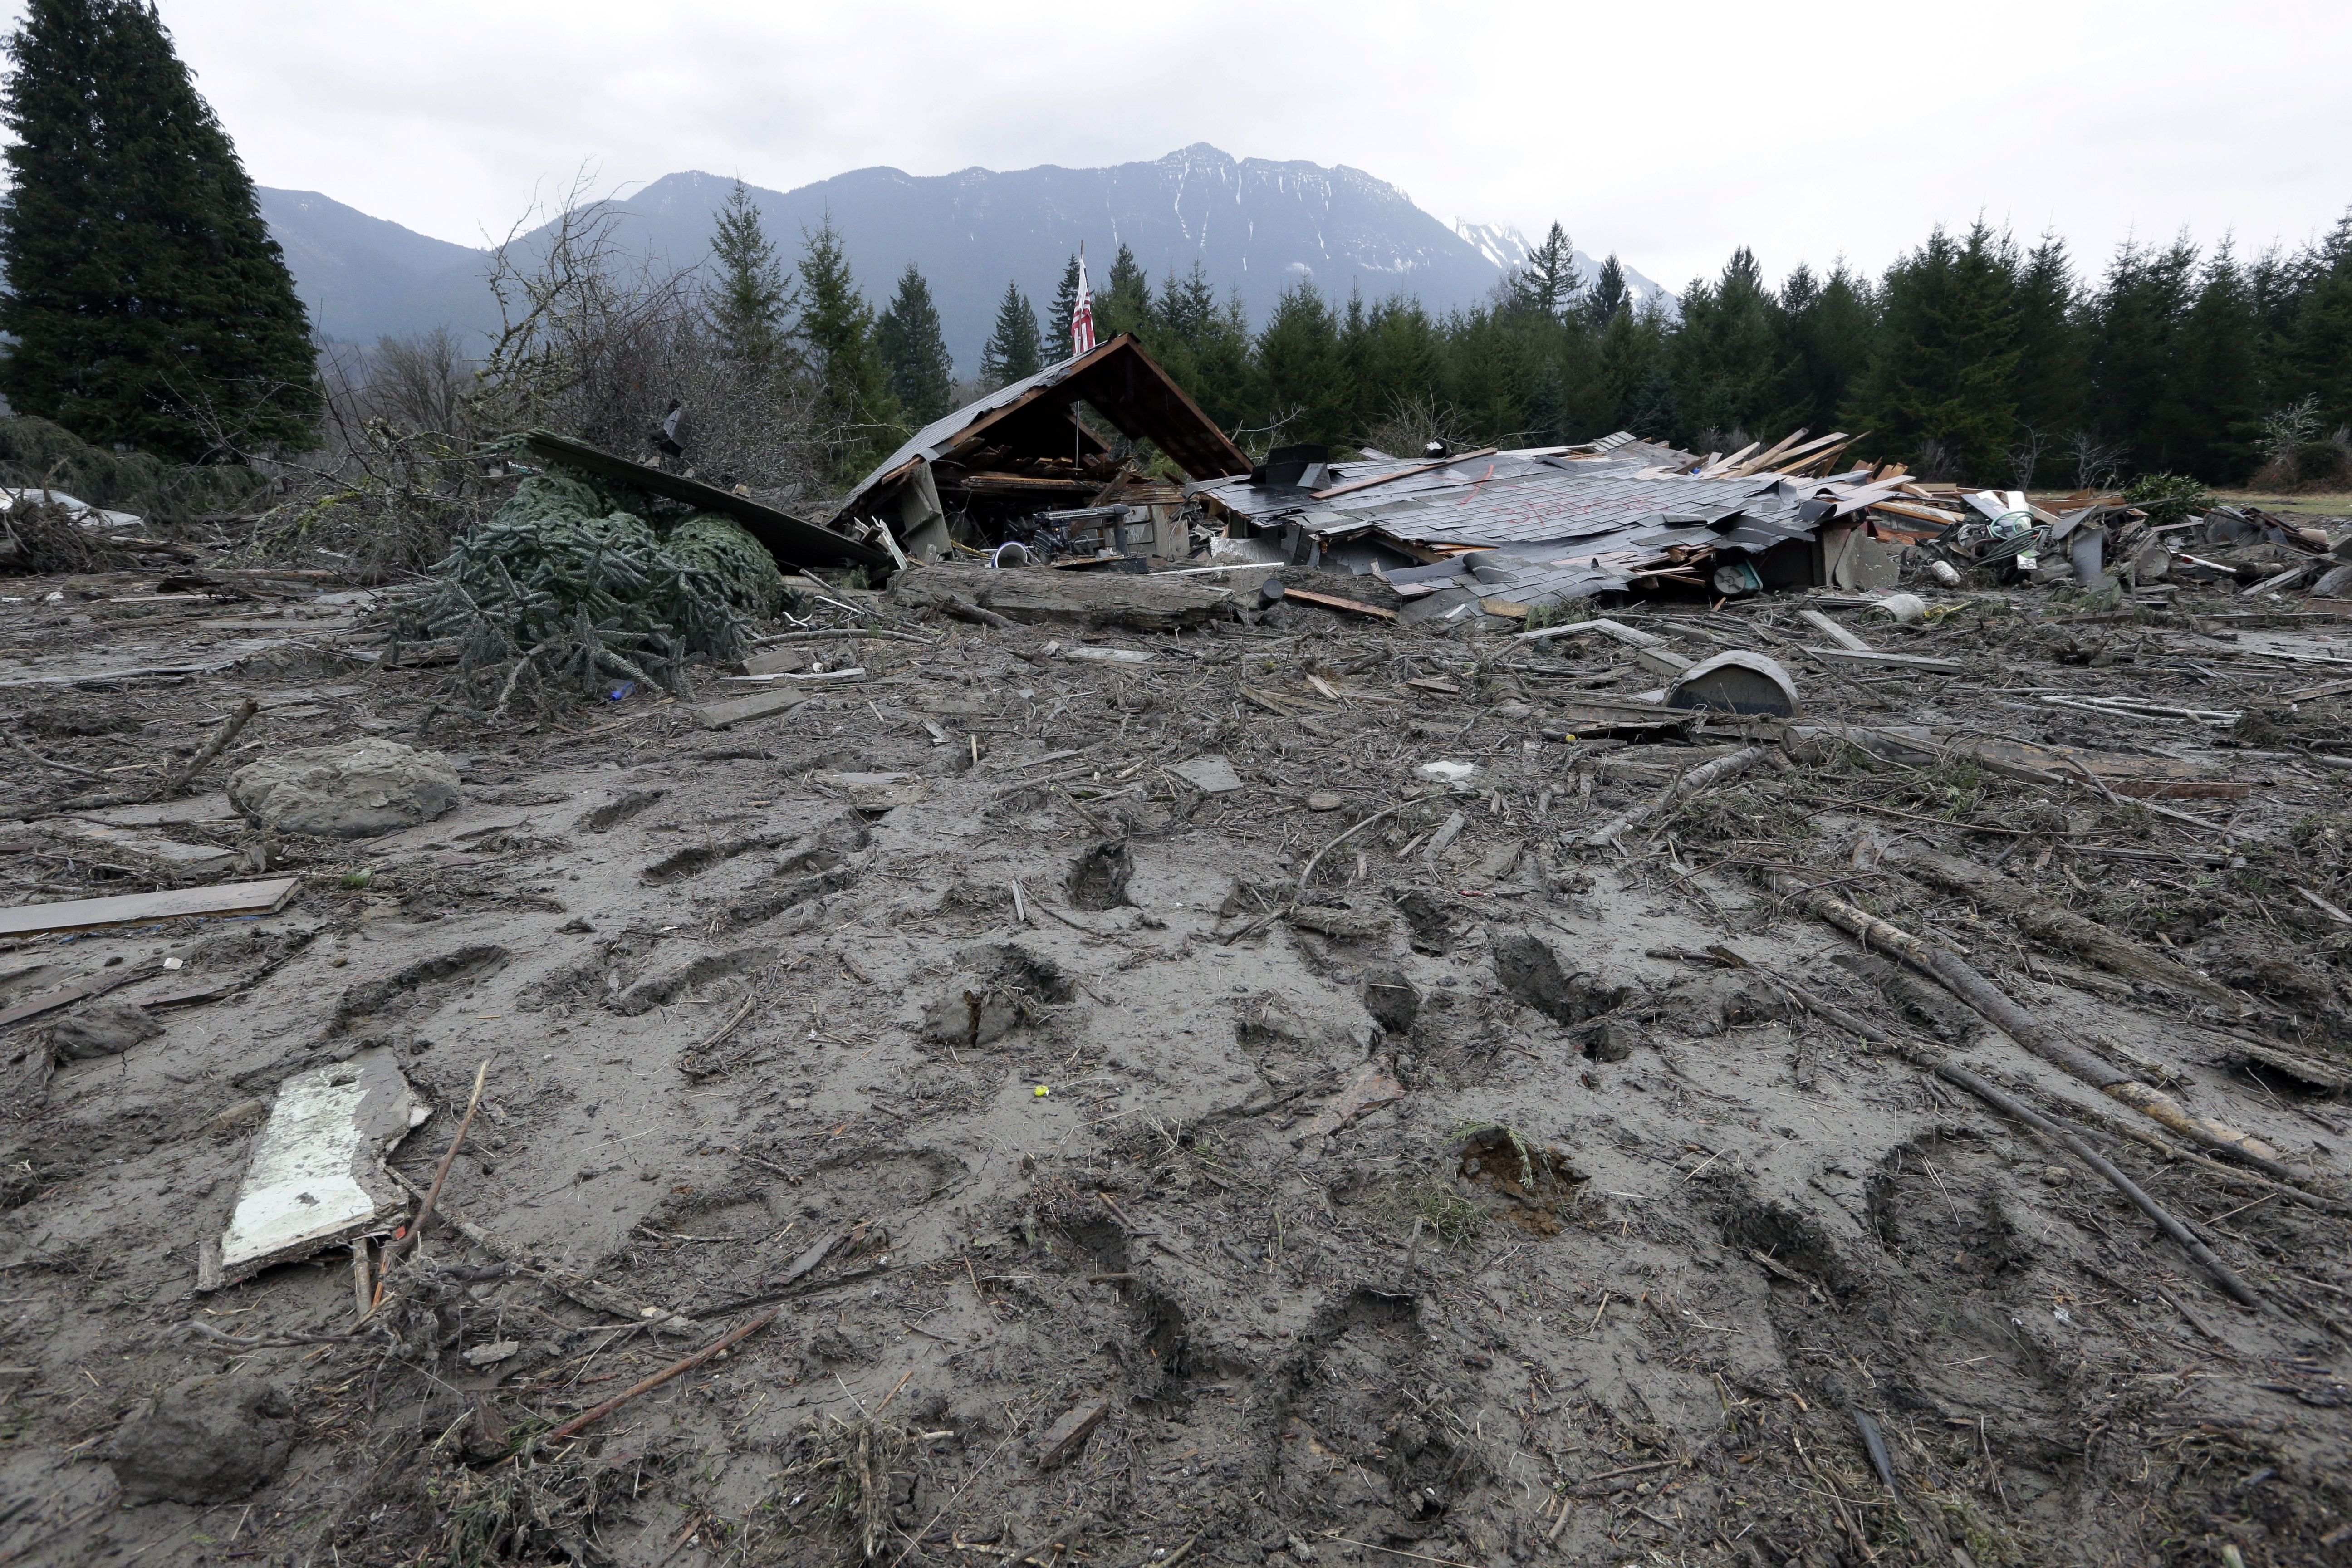 Footprints from searchers remain in mud at the edge of a deadly mudslide on March 25 in Oso, Wash.